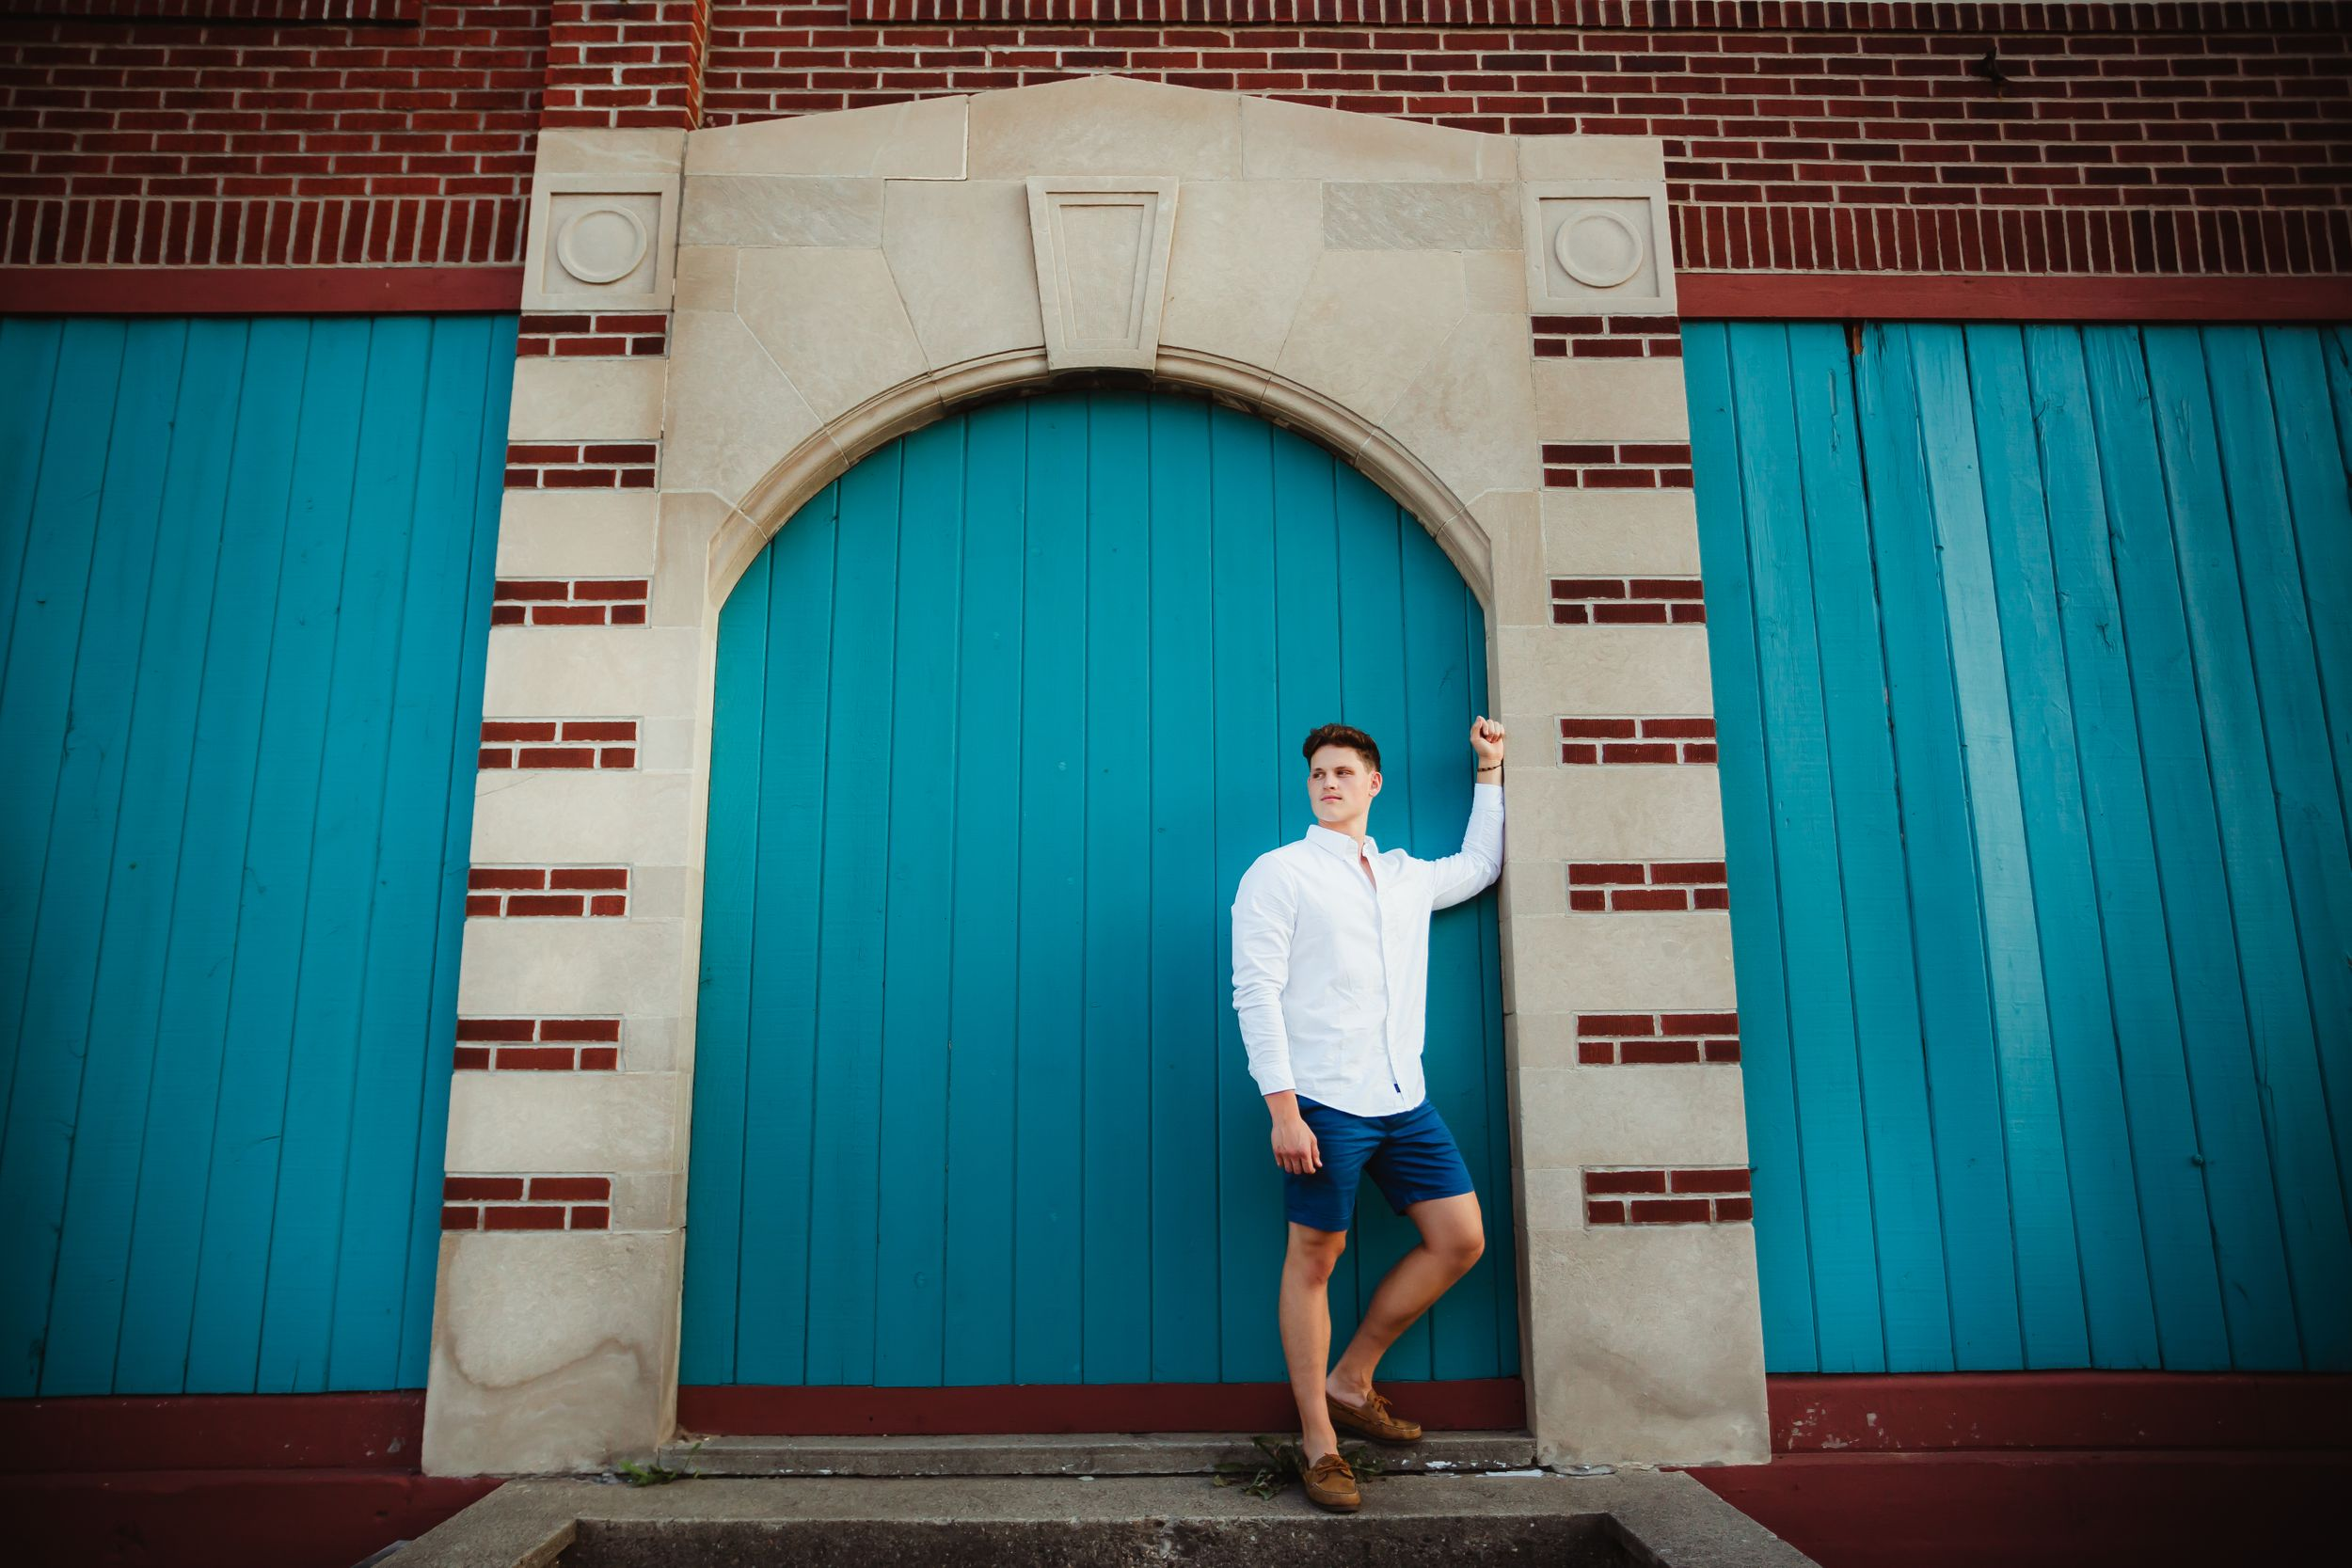 Wide shot of high school boy standing on a step and leaning against a concrete pillar. The wall is brick and teal wood.